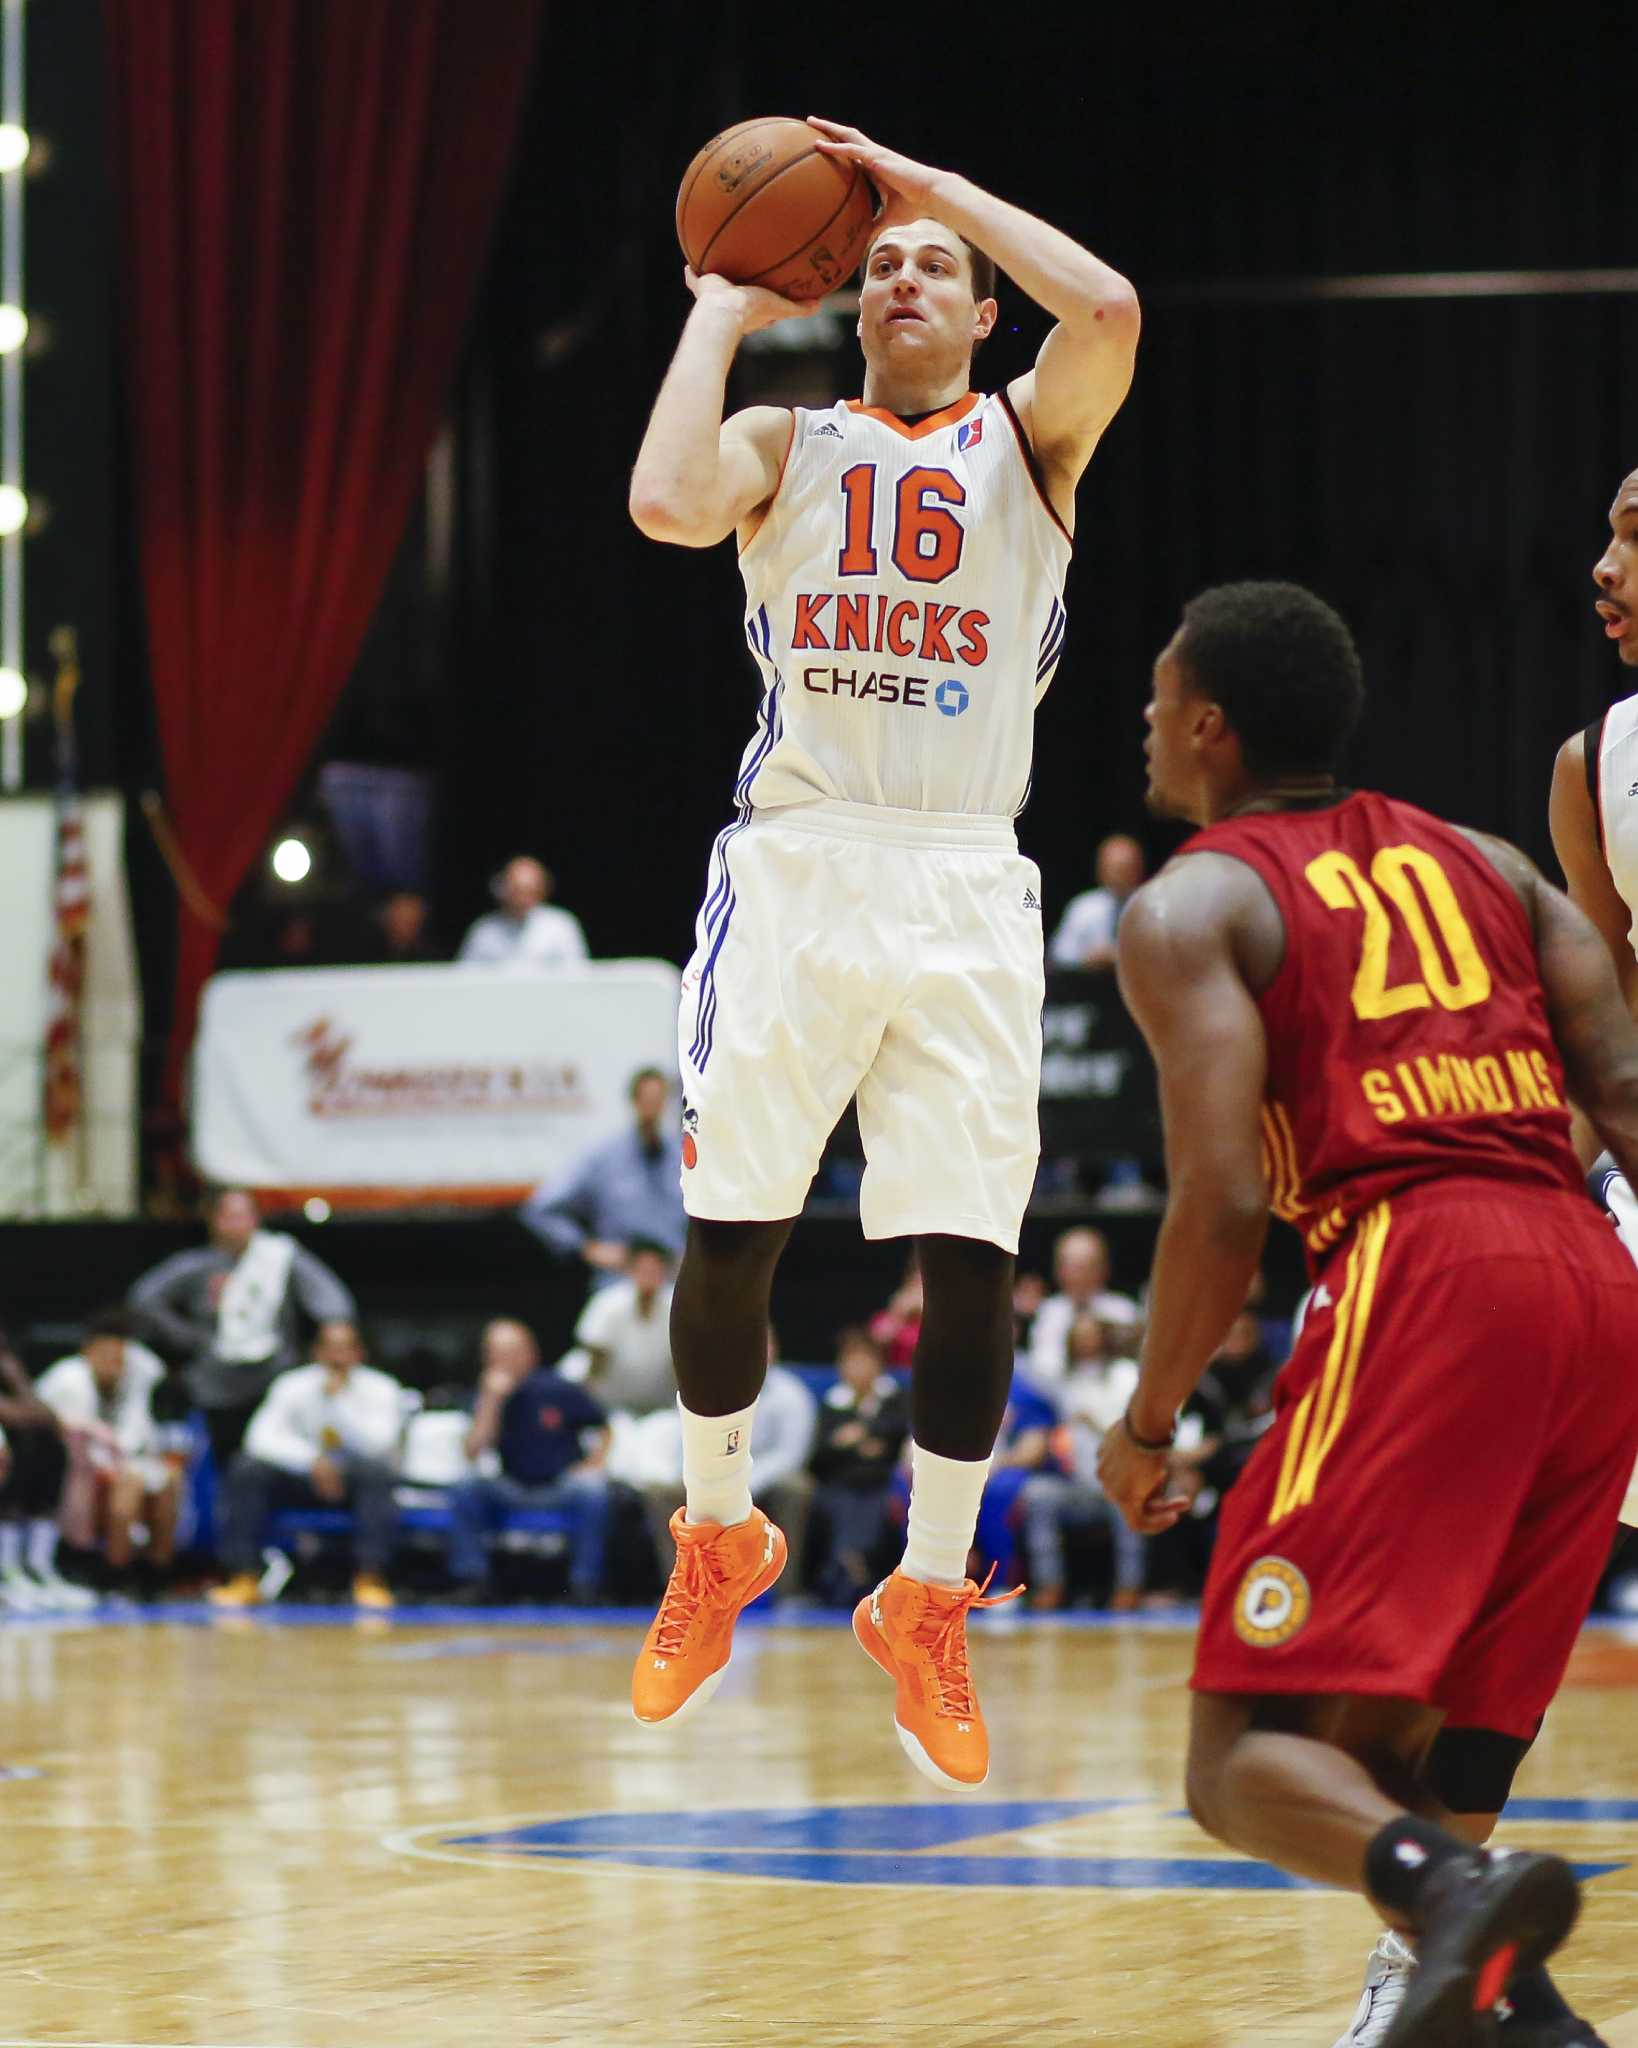 100% authentic f1184 1f420 Jimmer to get another NBA shot with Knicks - Times Union